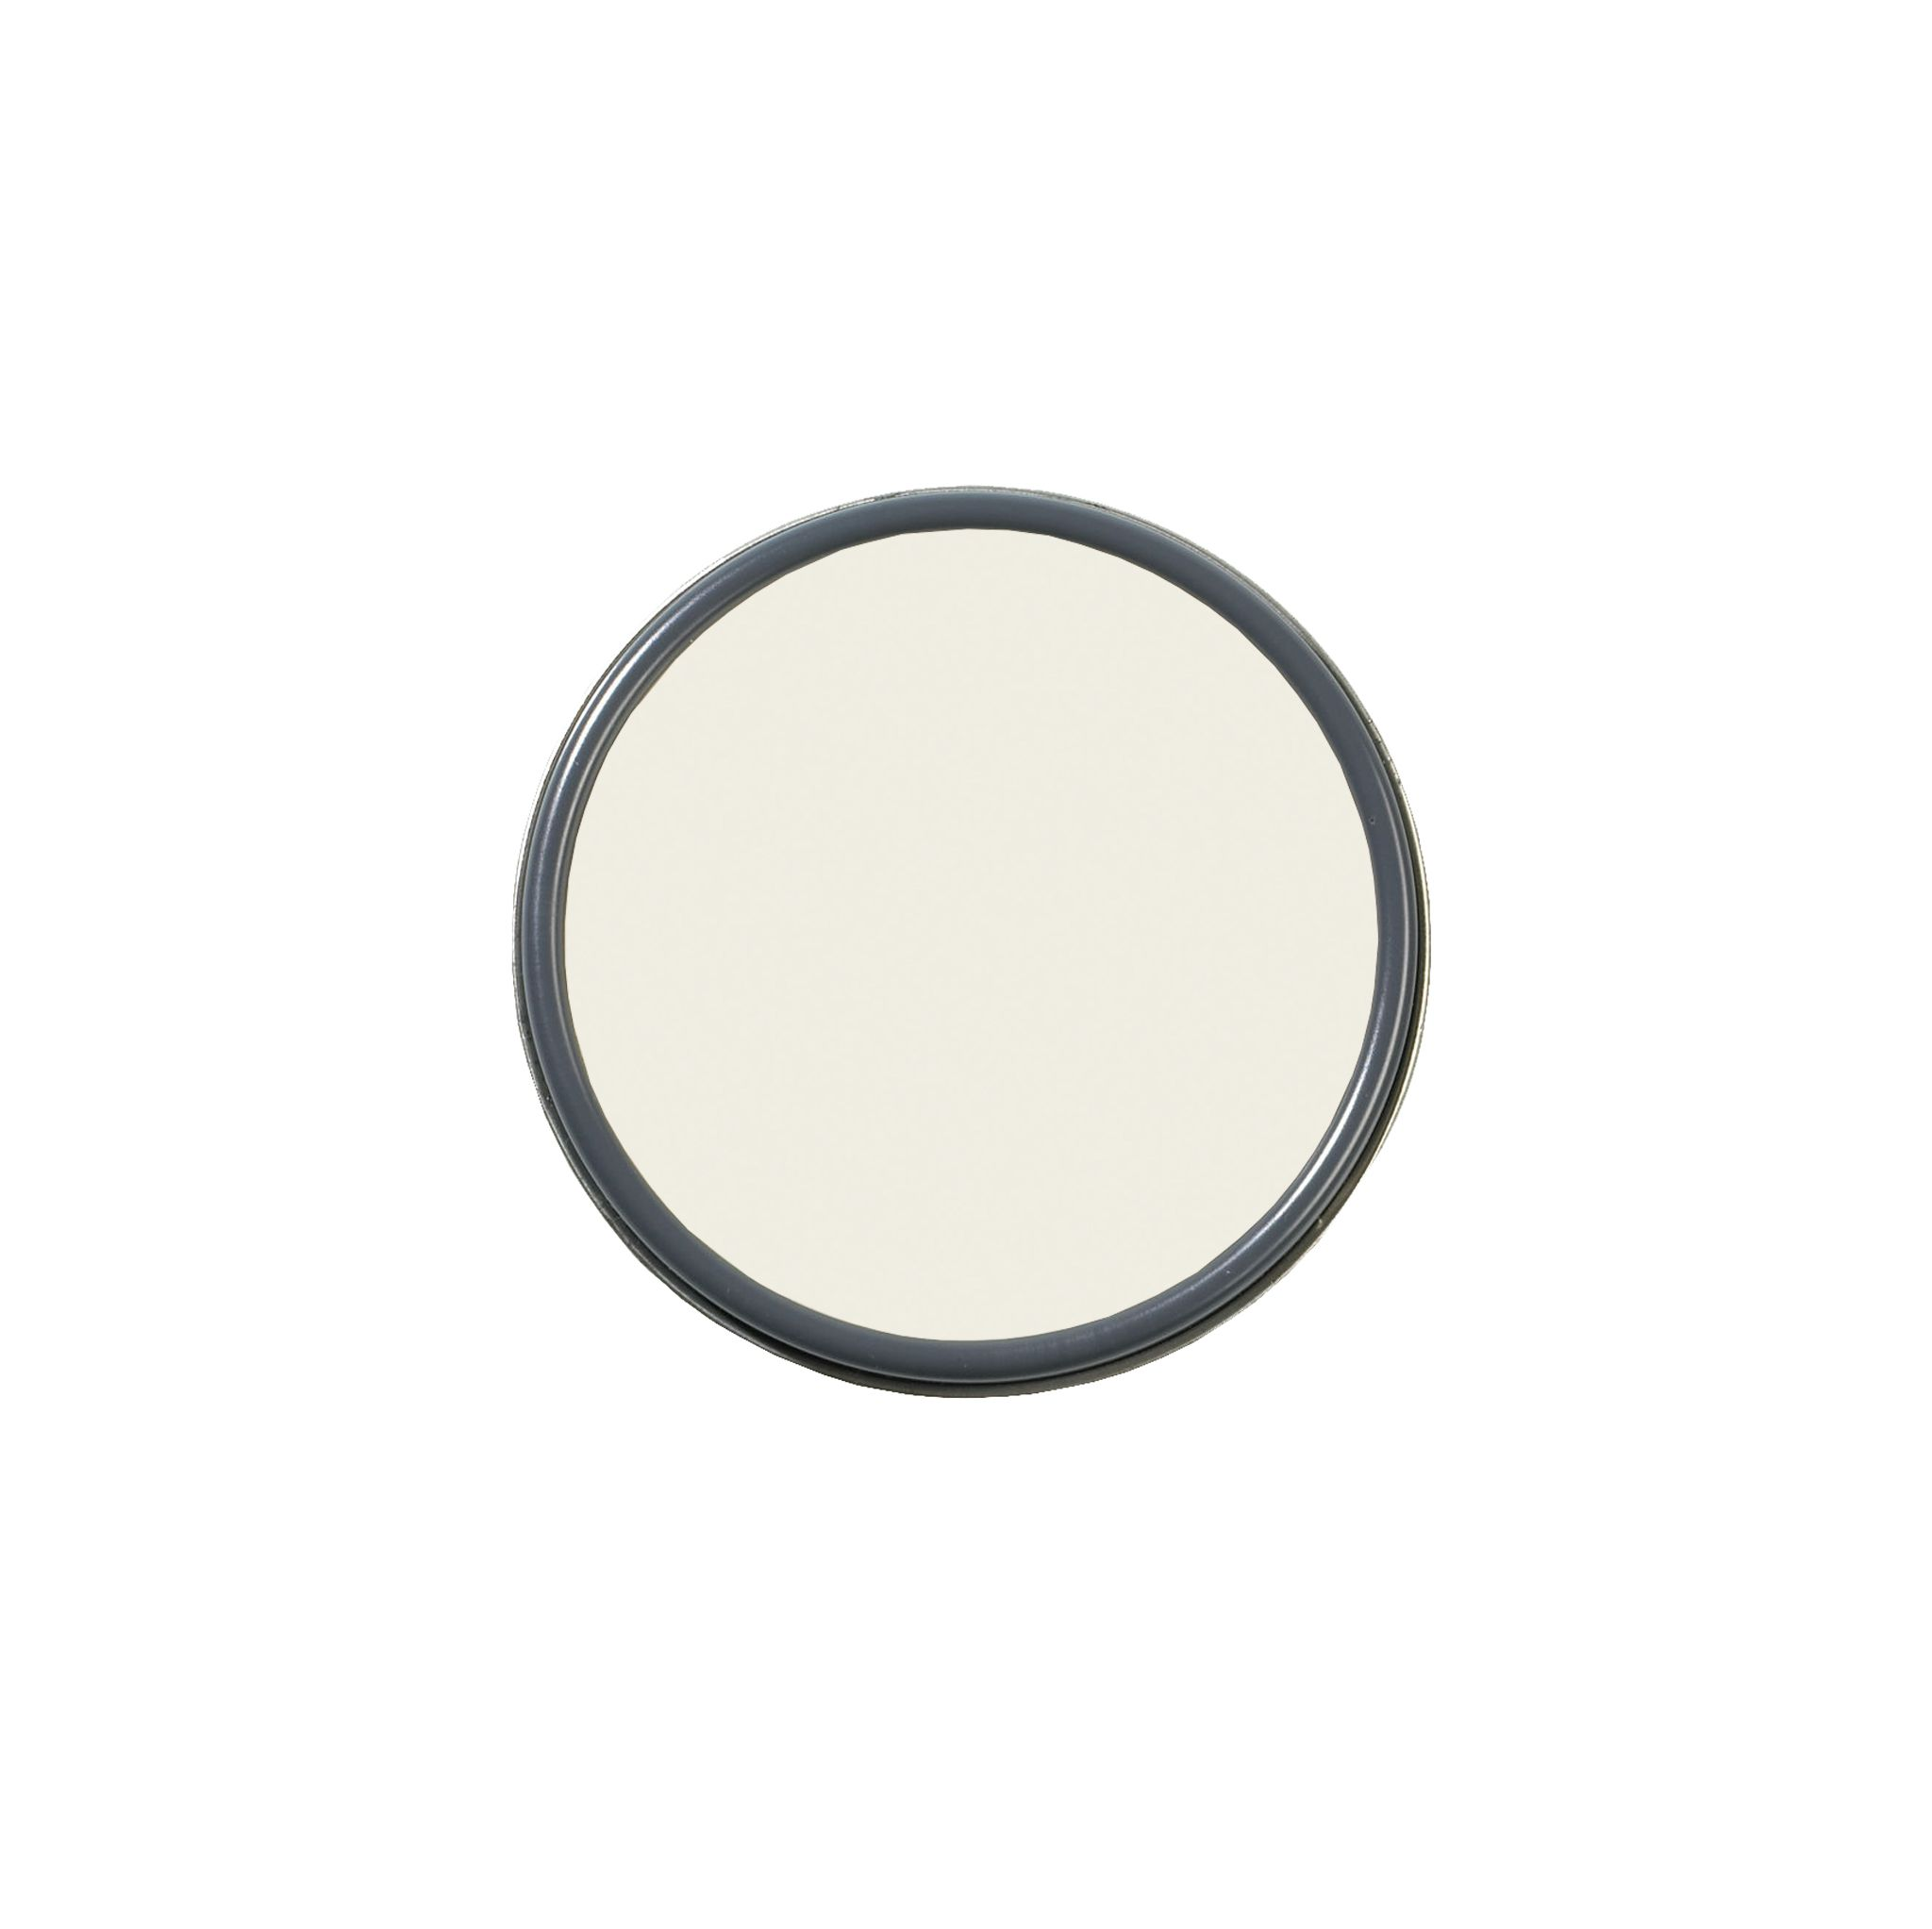 Dunn Edwards' Swiss Coffee paint color